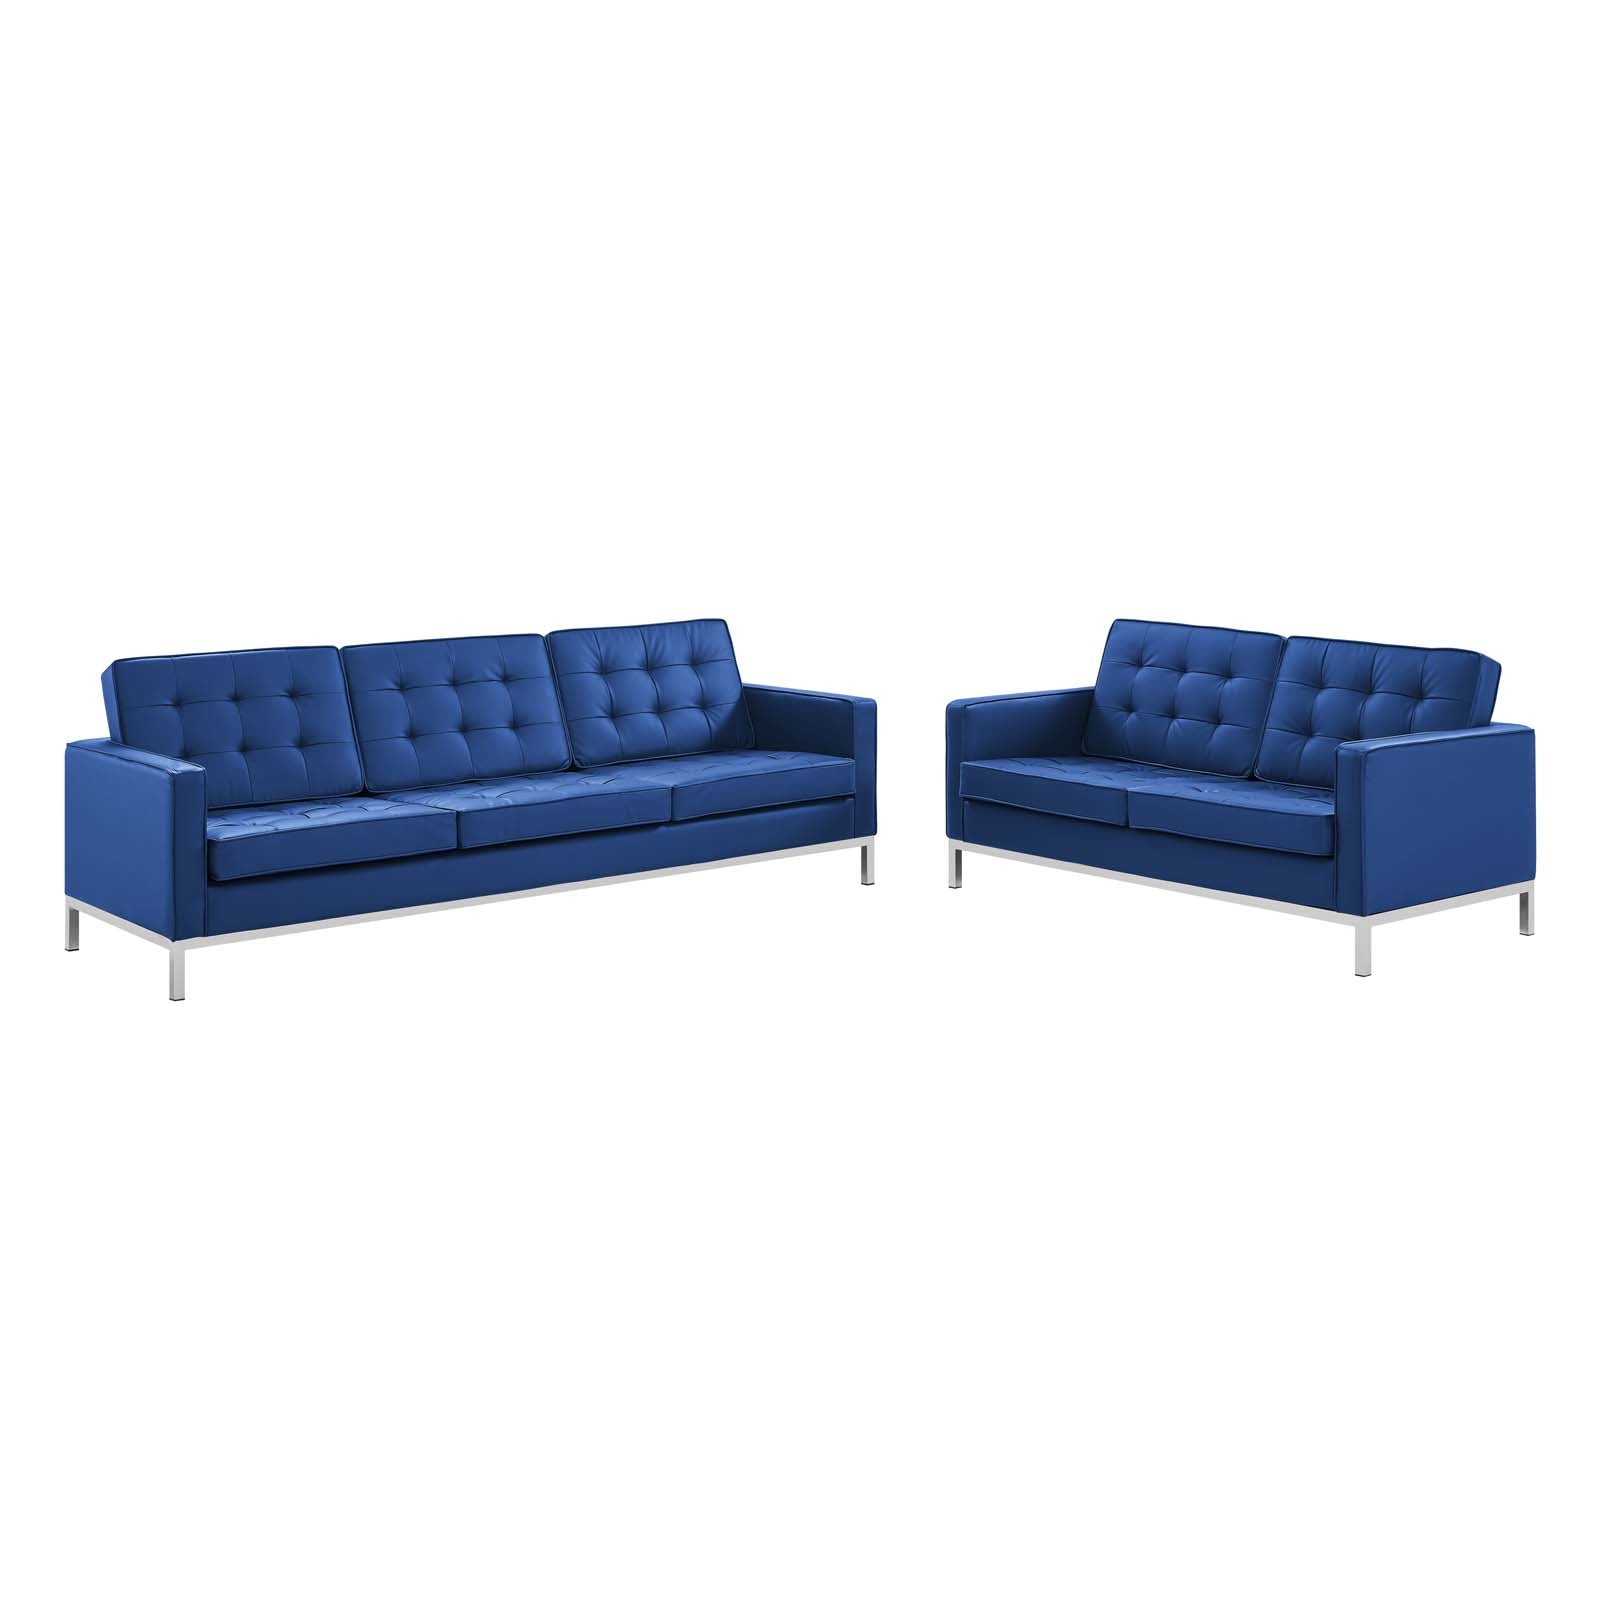 Loft Tufted Upholstered Faux Leather Sofa and Loveseat Set